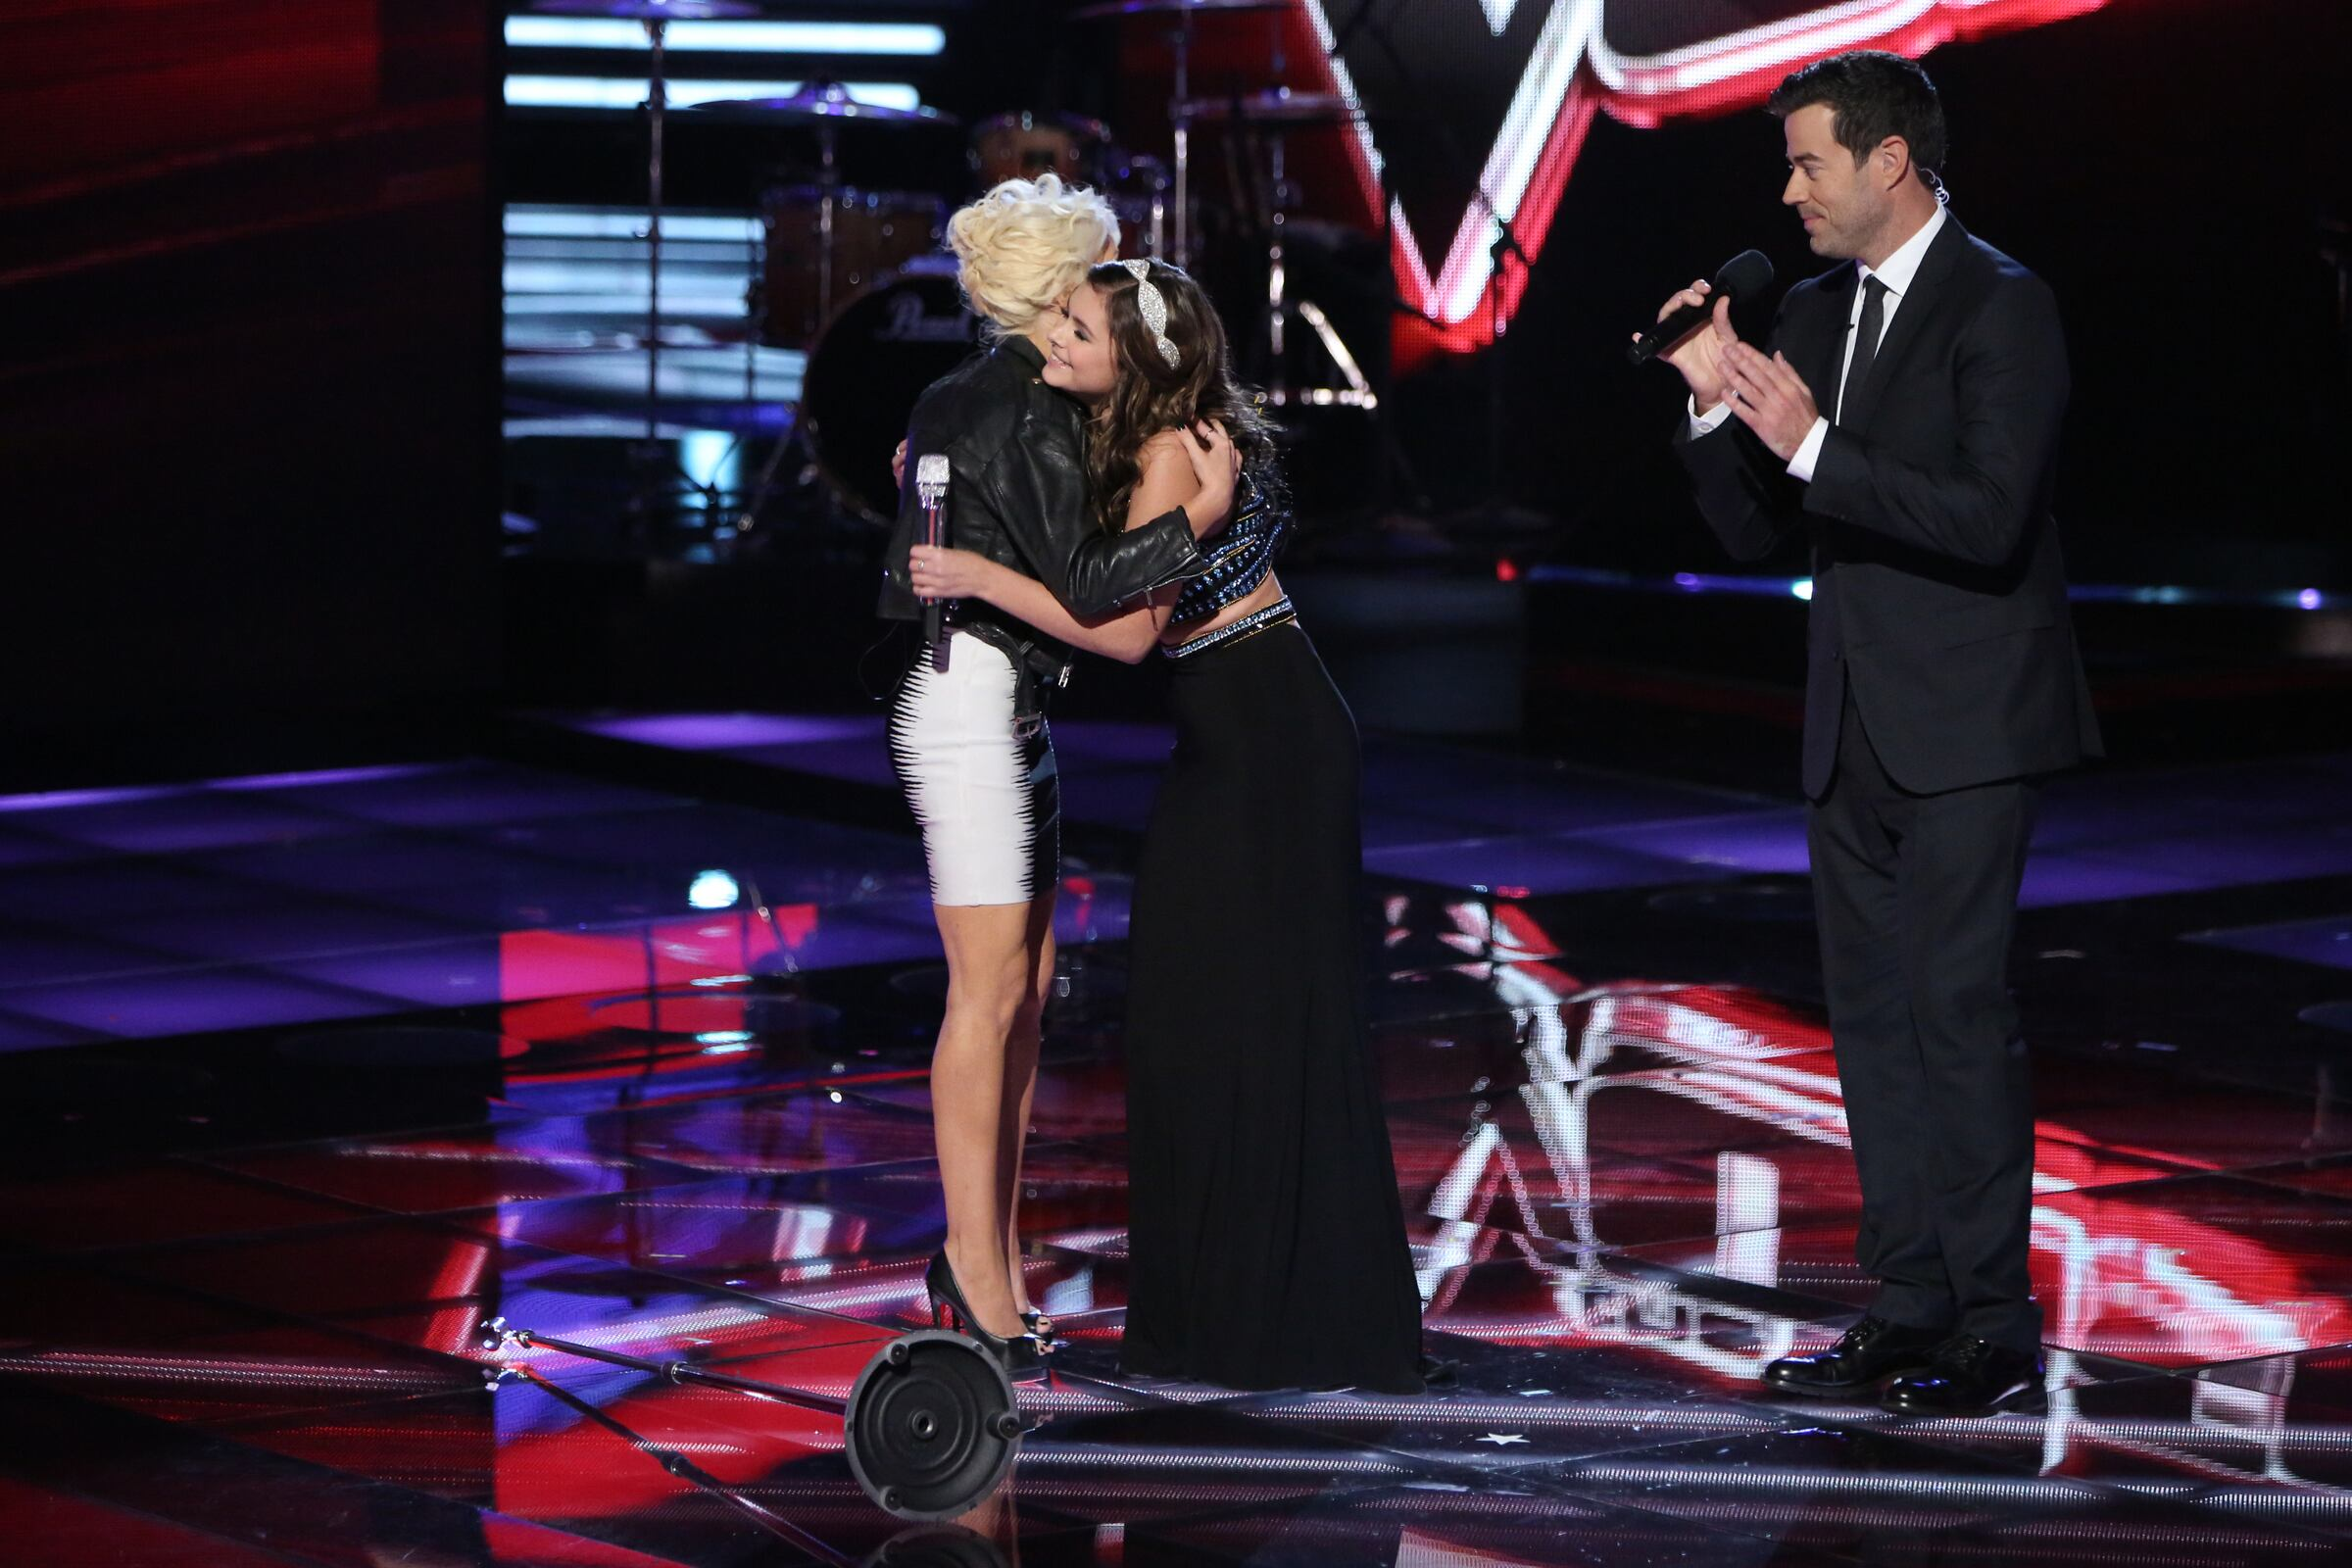 """Her performance of """"Cry Baby"""" brought her coach, to whom she'd grown close, onstage for a post-performance hug."""